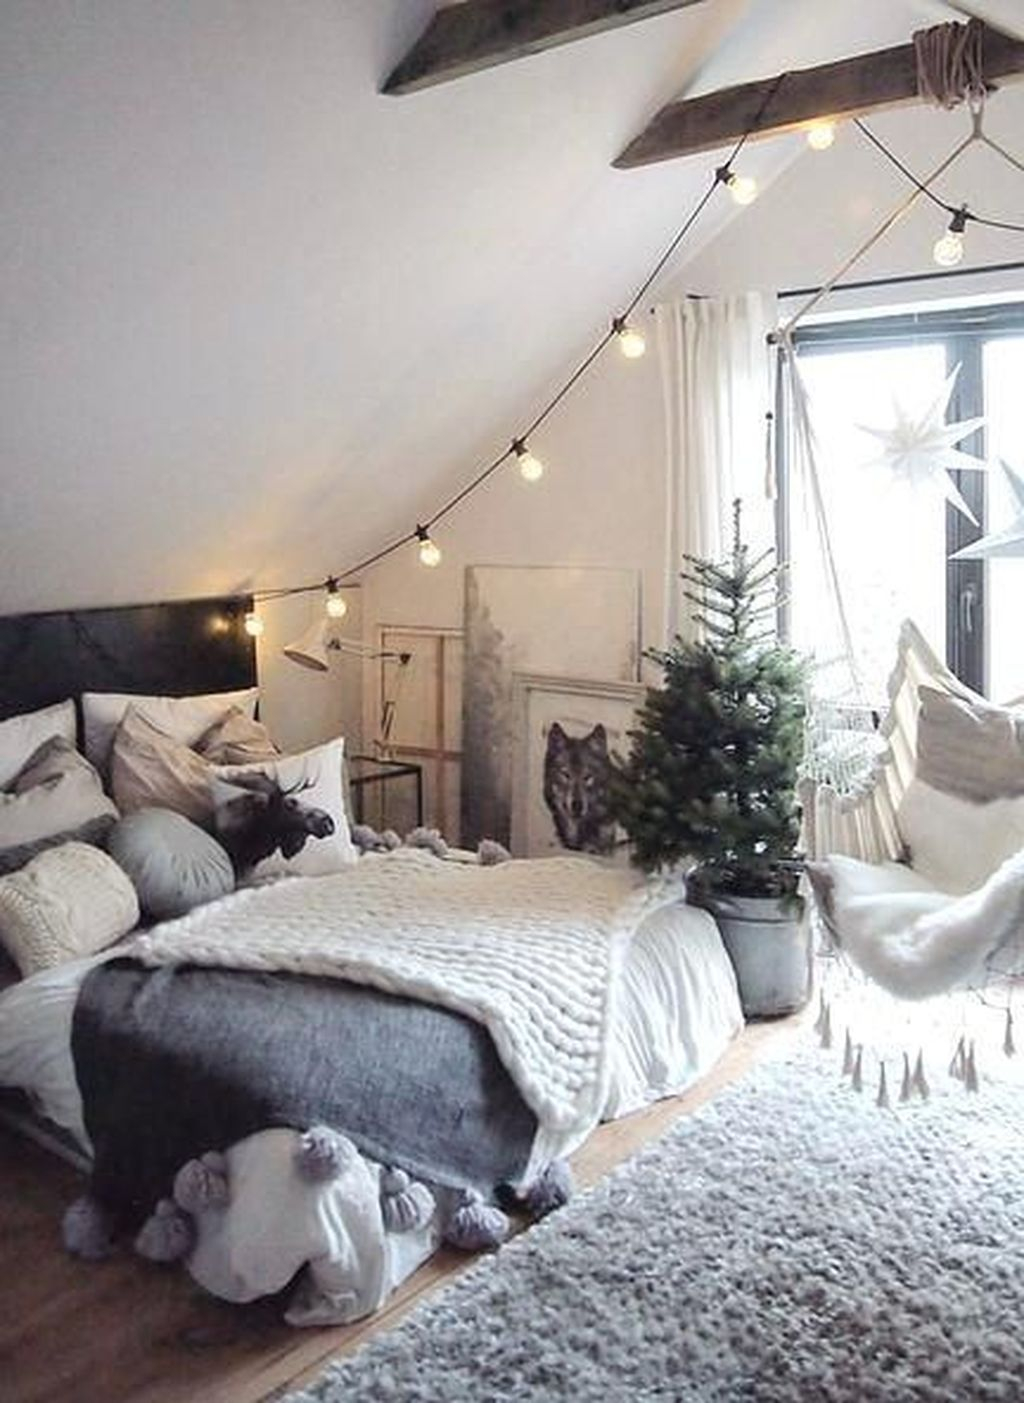 Admiring Bedroom Decor Ideas To Have Right Now 29